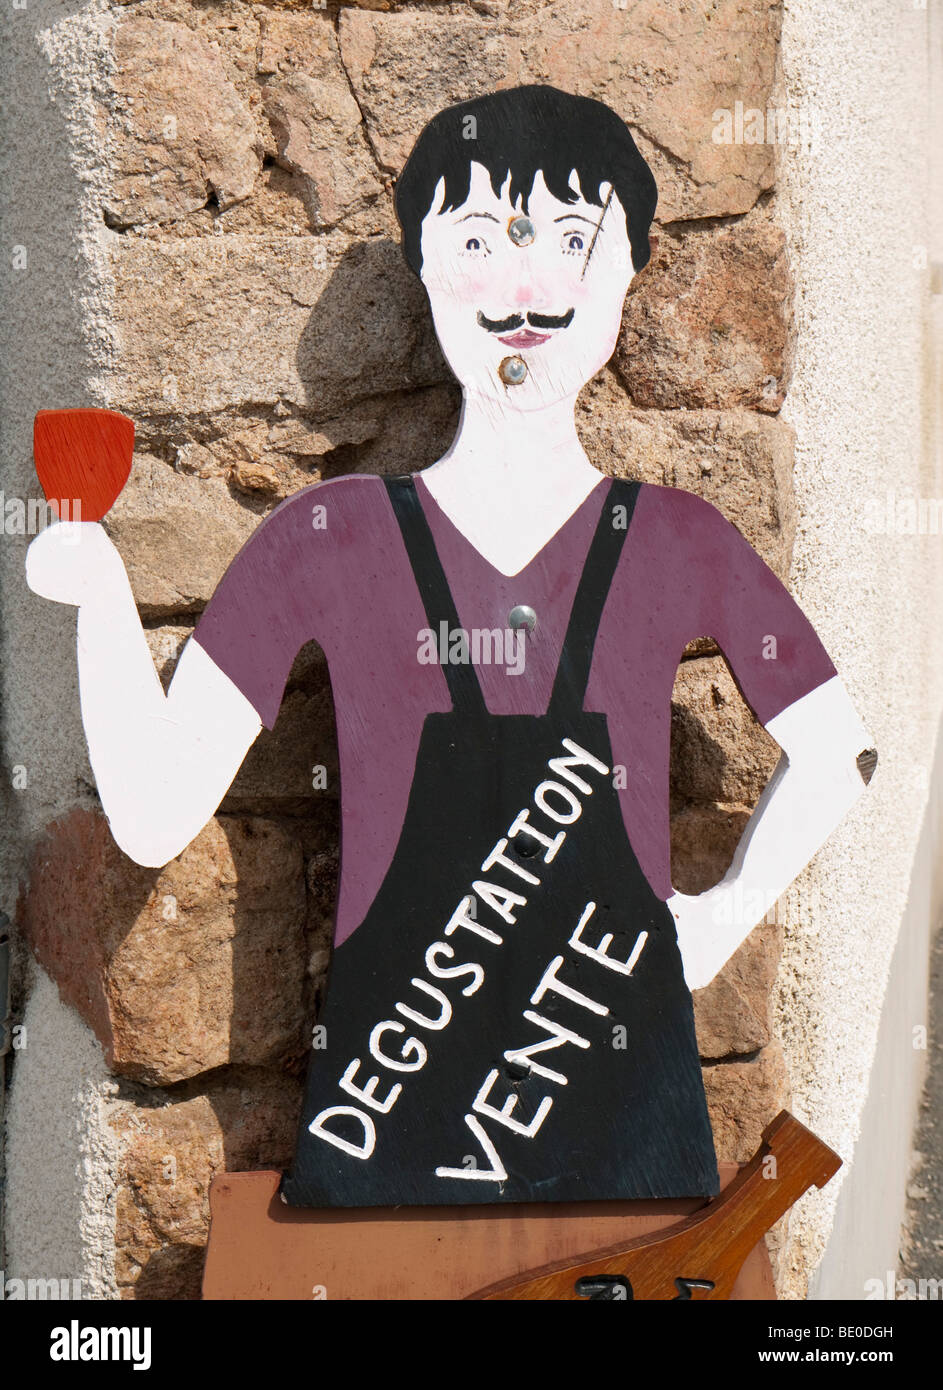 A wooden figure resembling a vintner advertises the renowned Beaujolais wine of Fleurie. - Stock Image